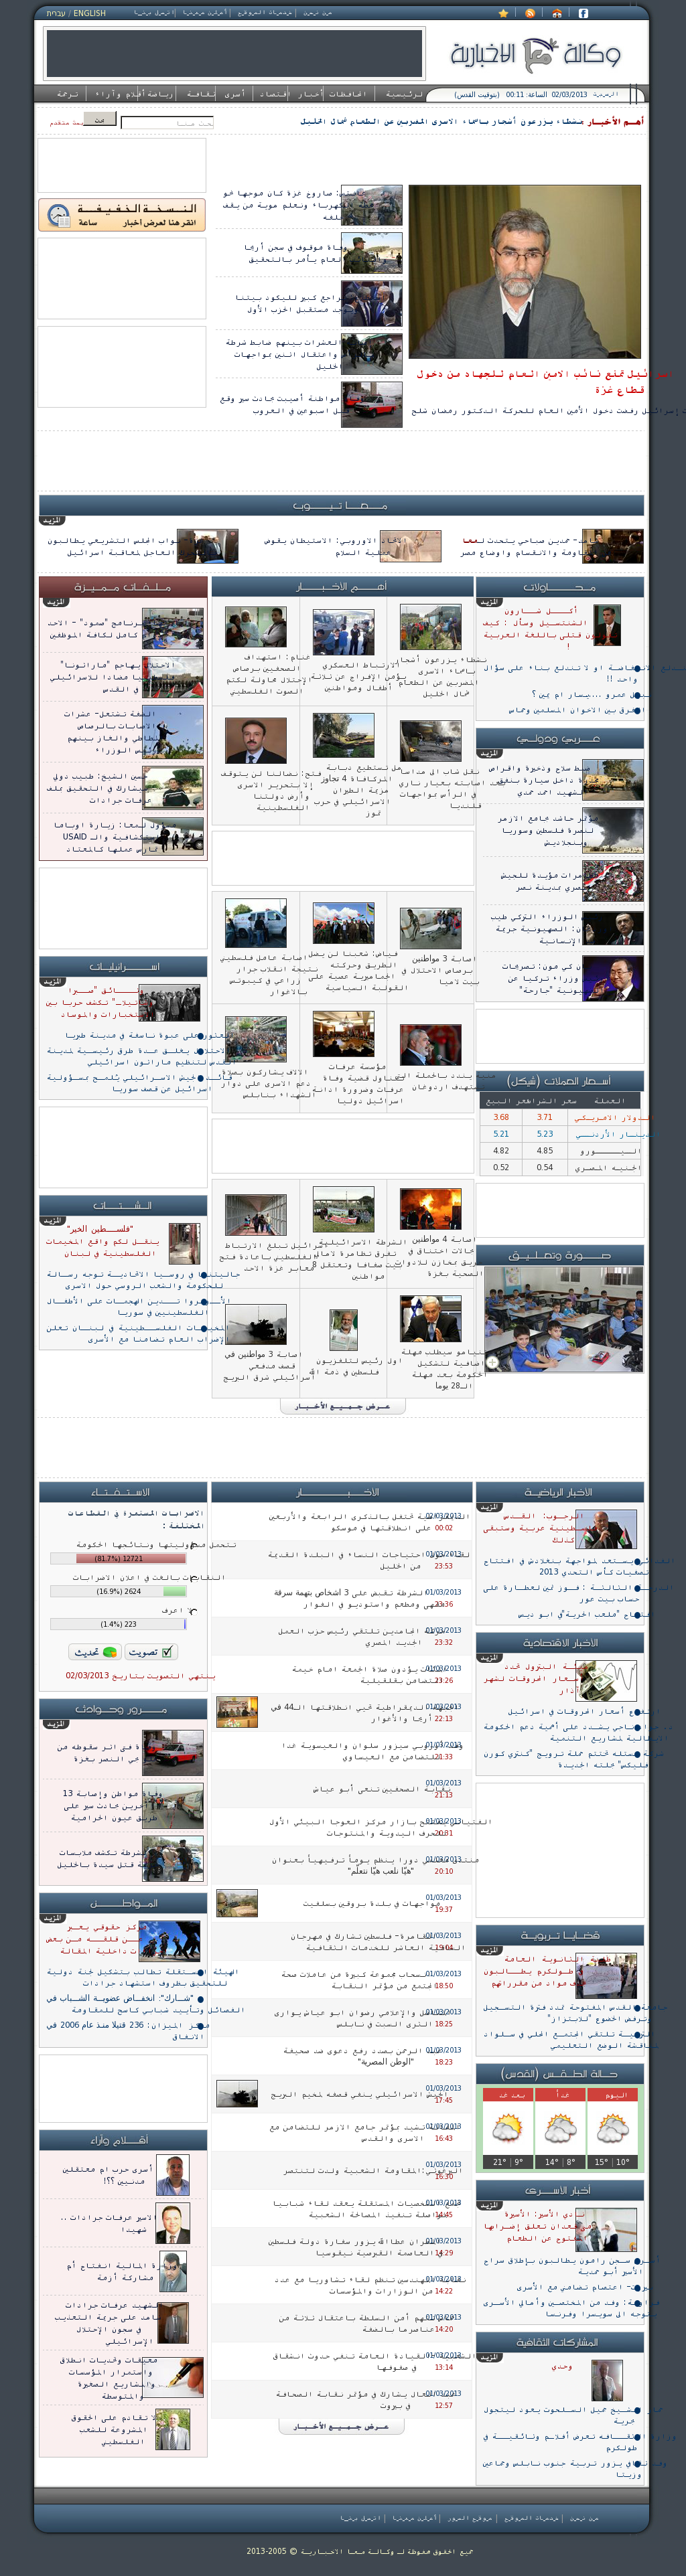 Ma'an News at Friday March 1, 2013, 10:10 p.m. UTC